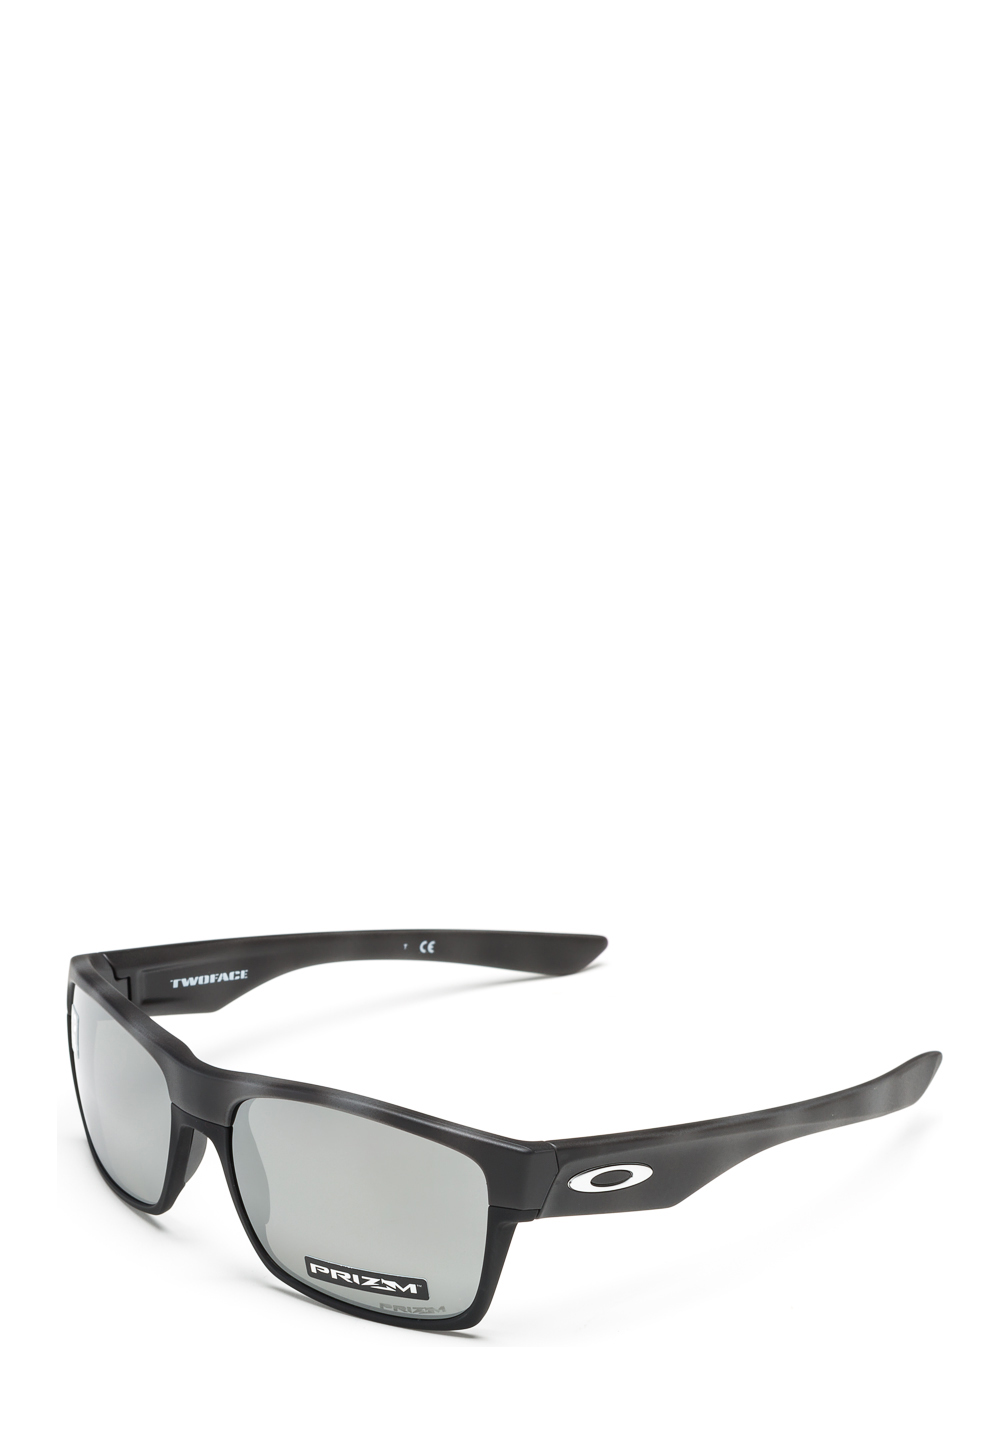 Sonnenbrille Two Face, polarized, UV 400 schwarz